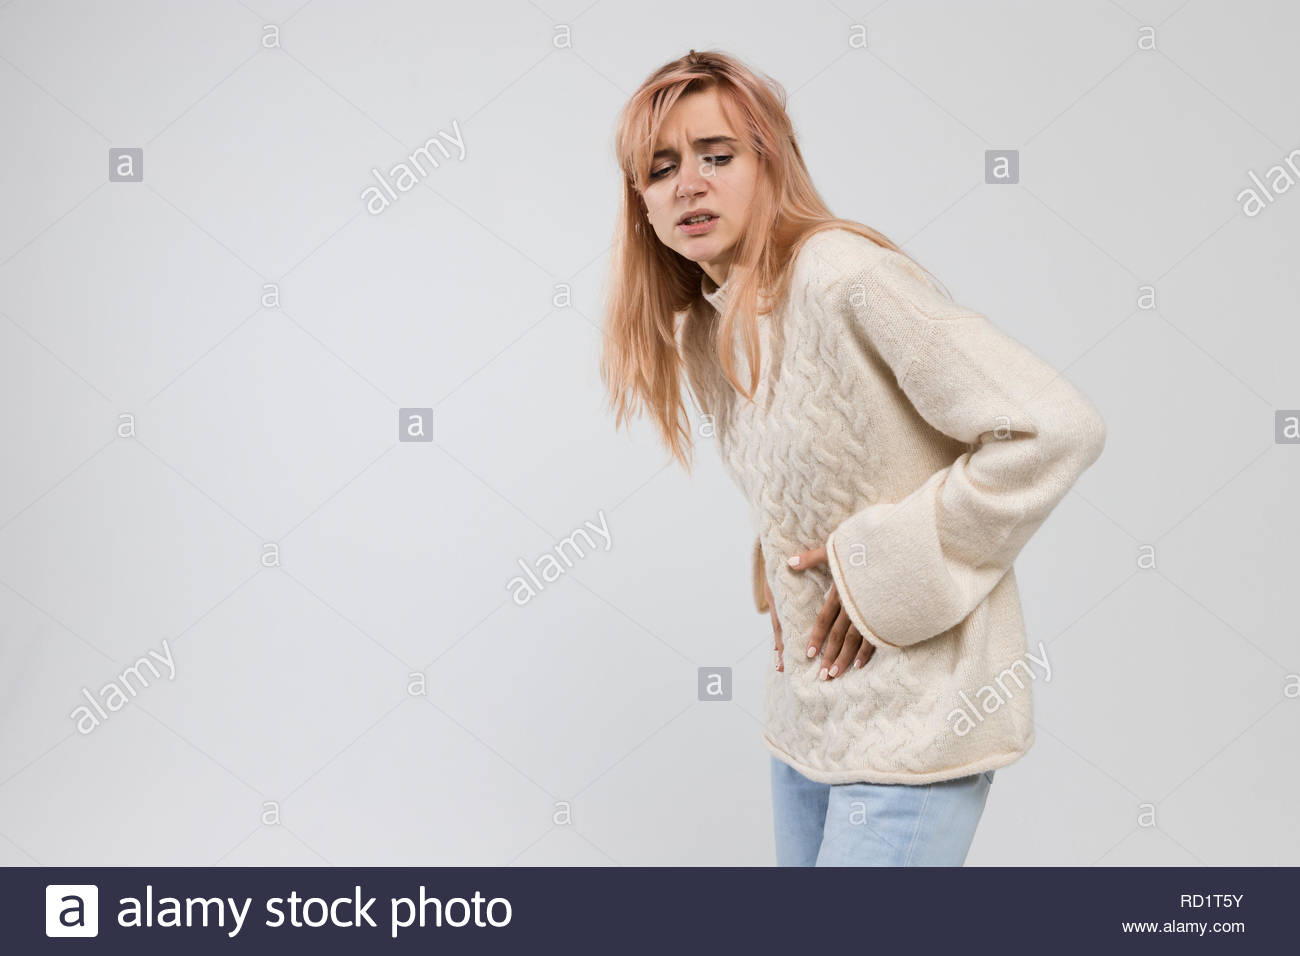 Portrait of woman in white sweater suffering from abdominal pain, having menstruation pain, feels bad, wrinkle in pain, side view, menstrual period. - Stock Image